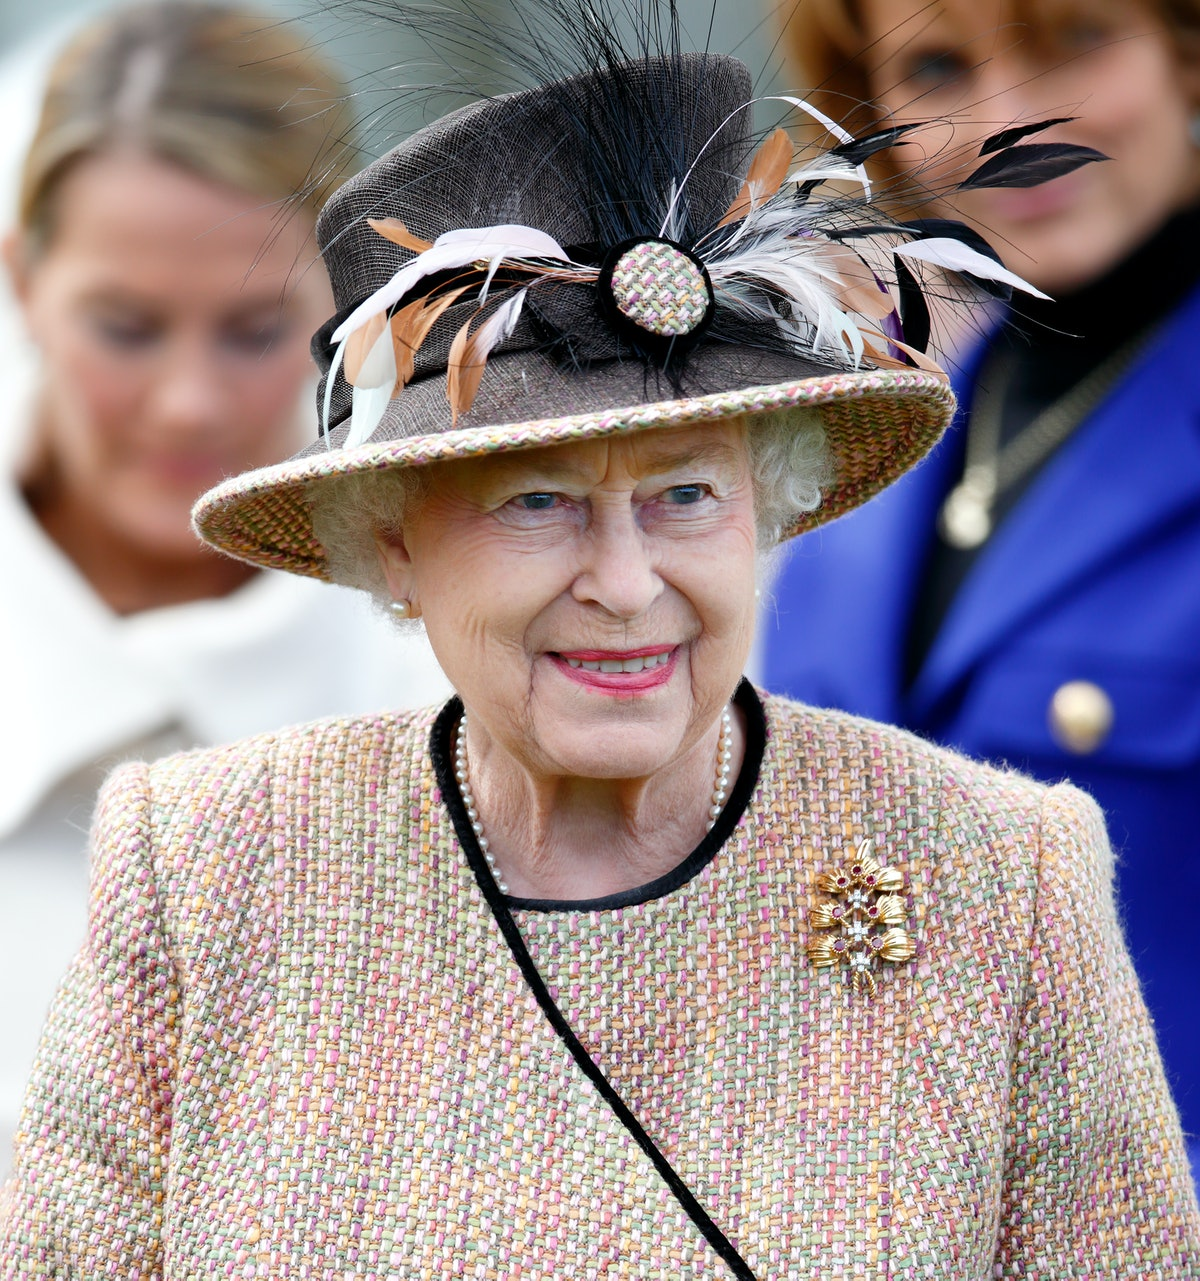 NEWBURY, UNITED KINGDOM - APRIL 19: (EMBARGOED FOR PUBLICATION IN UK NEWSPAPERS UNTIL 48 HOURS AFTER CREATE DATE AND TIME) Queen Elizabeth II (wearing her gold and ruby floral trellis brooch) attends the Dubai Duty Free Raceday at Newbury Racecourse on April 19, 2013 in Newbury, England. (Photo by Max Mumby/Indigo/Getty Images)